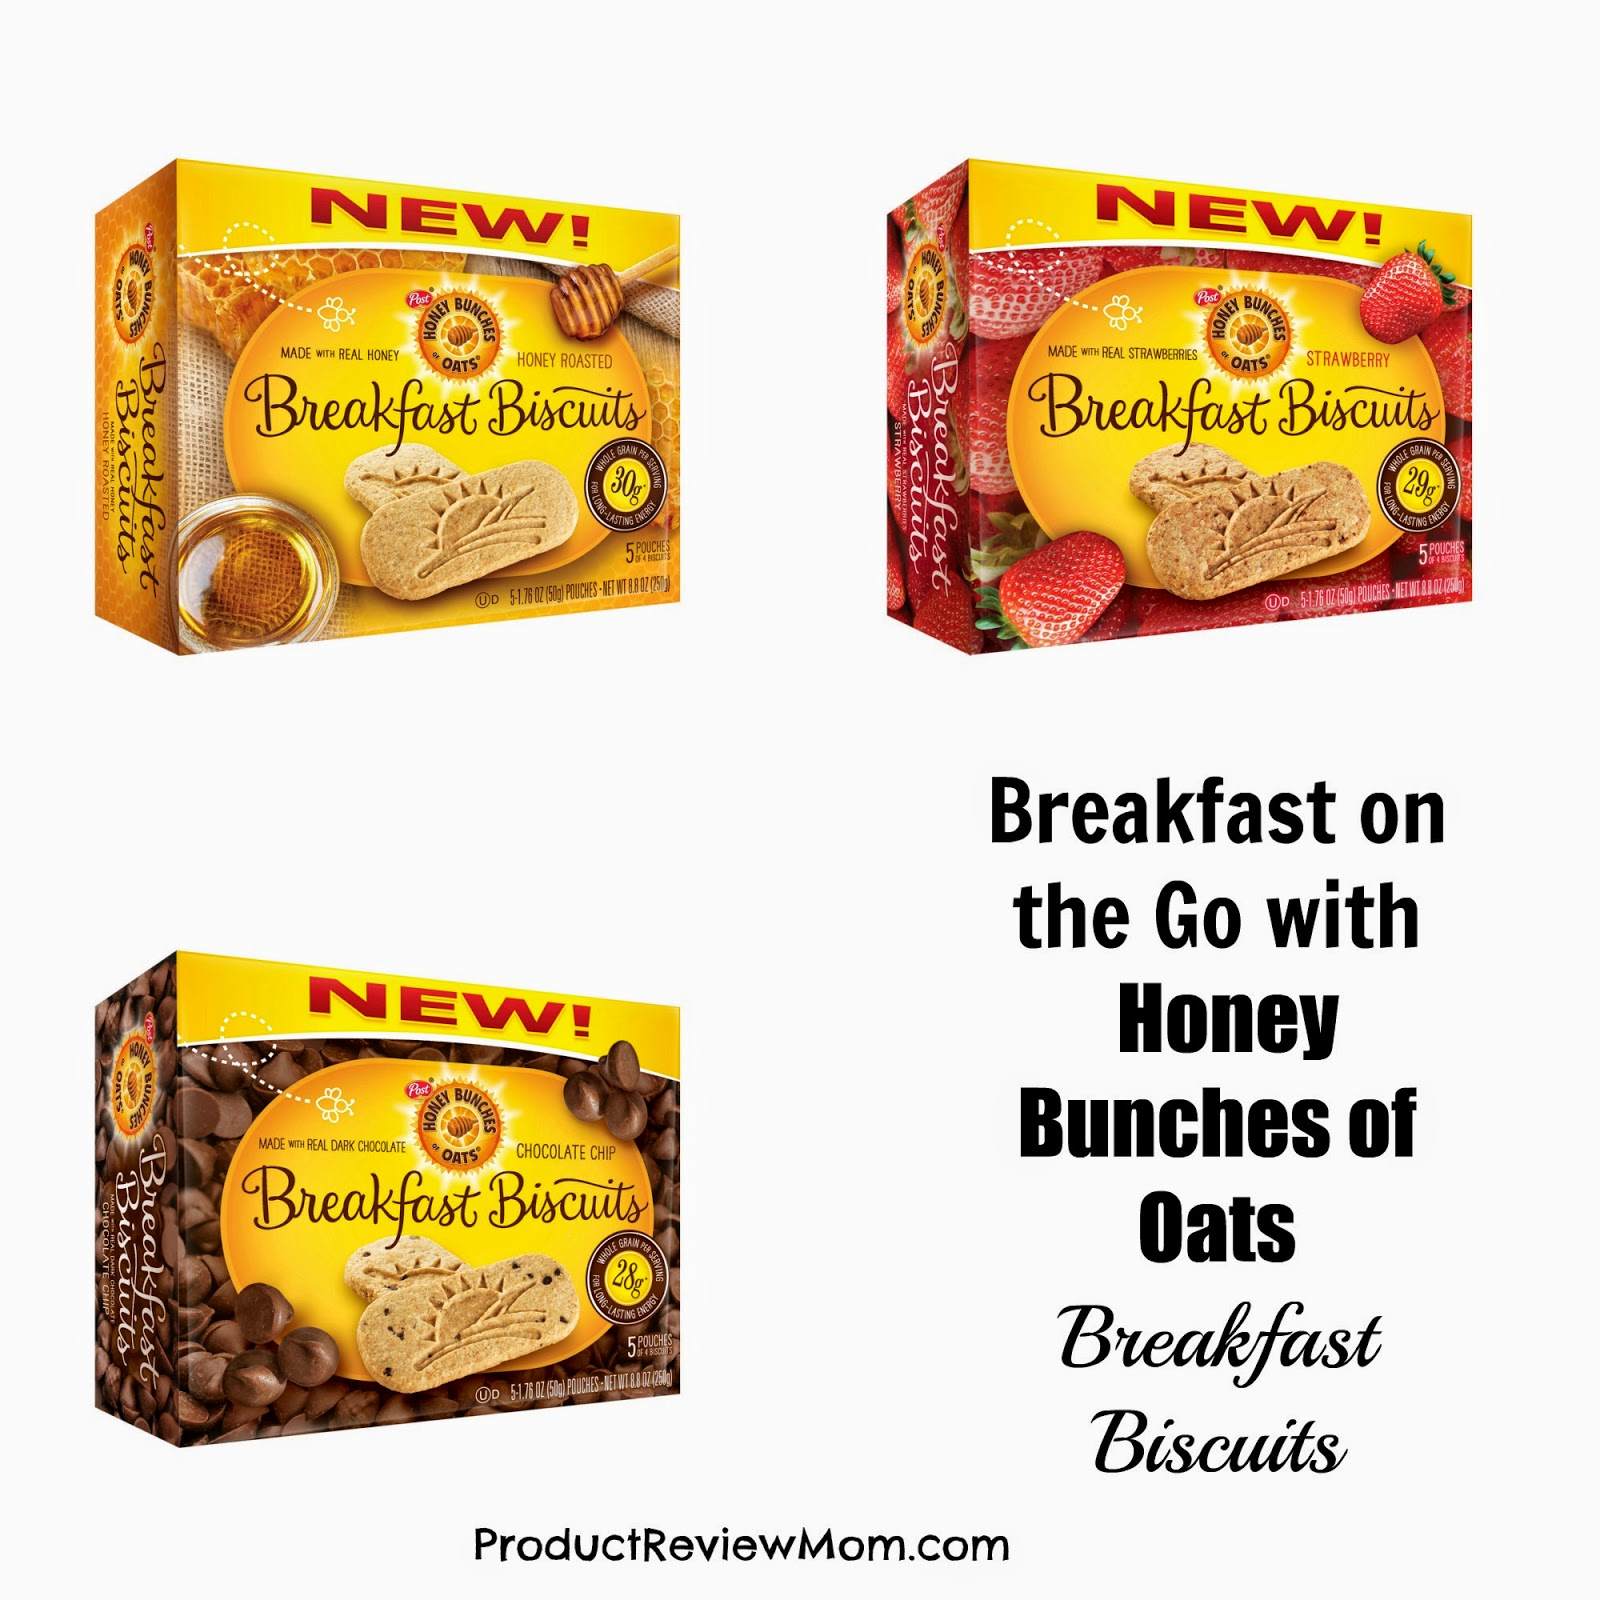 Breakfast on the Go with Honey Bunches of Oats Breakfast Biscuits @HBOats #HBOatsBiscuits #ad  via www.productreviewmom.com